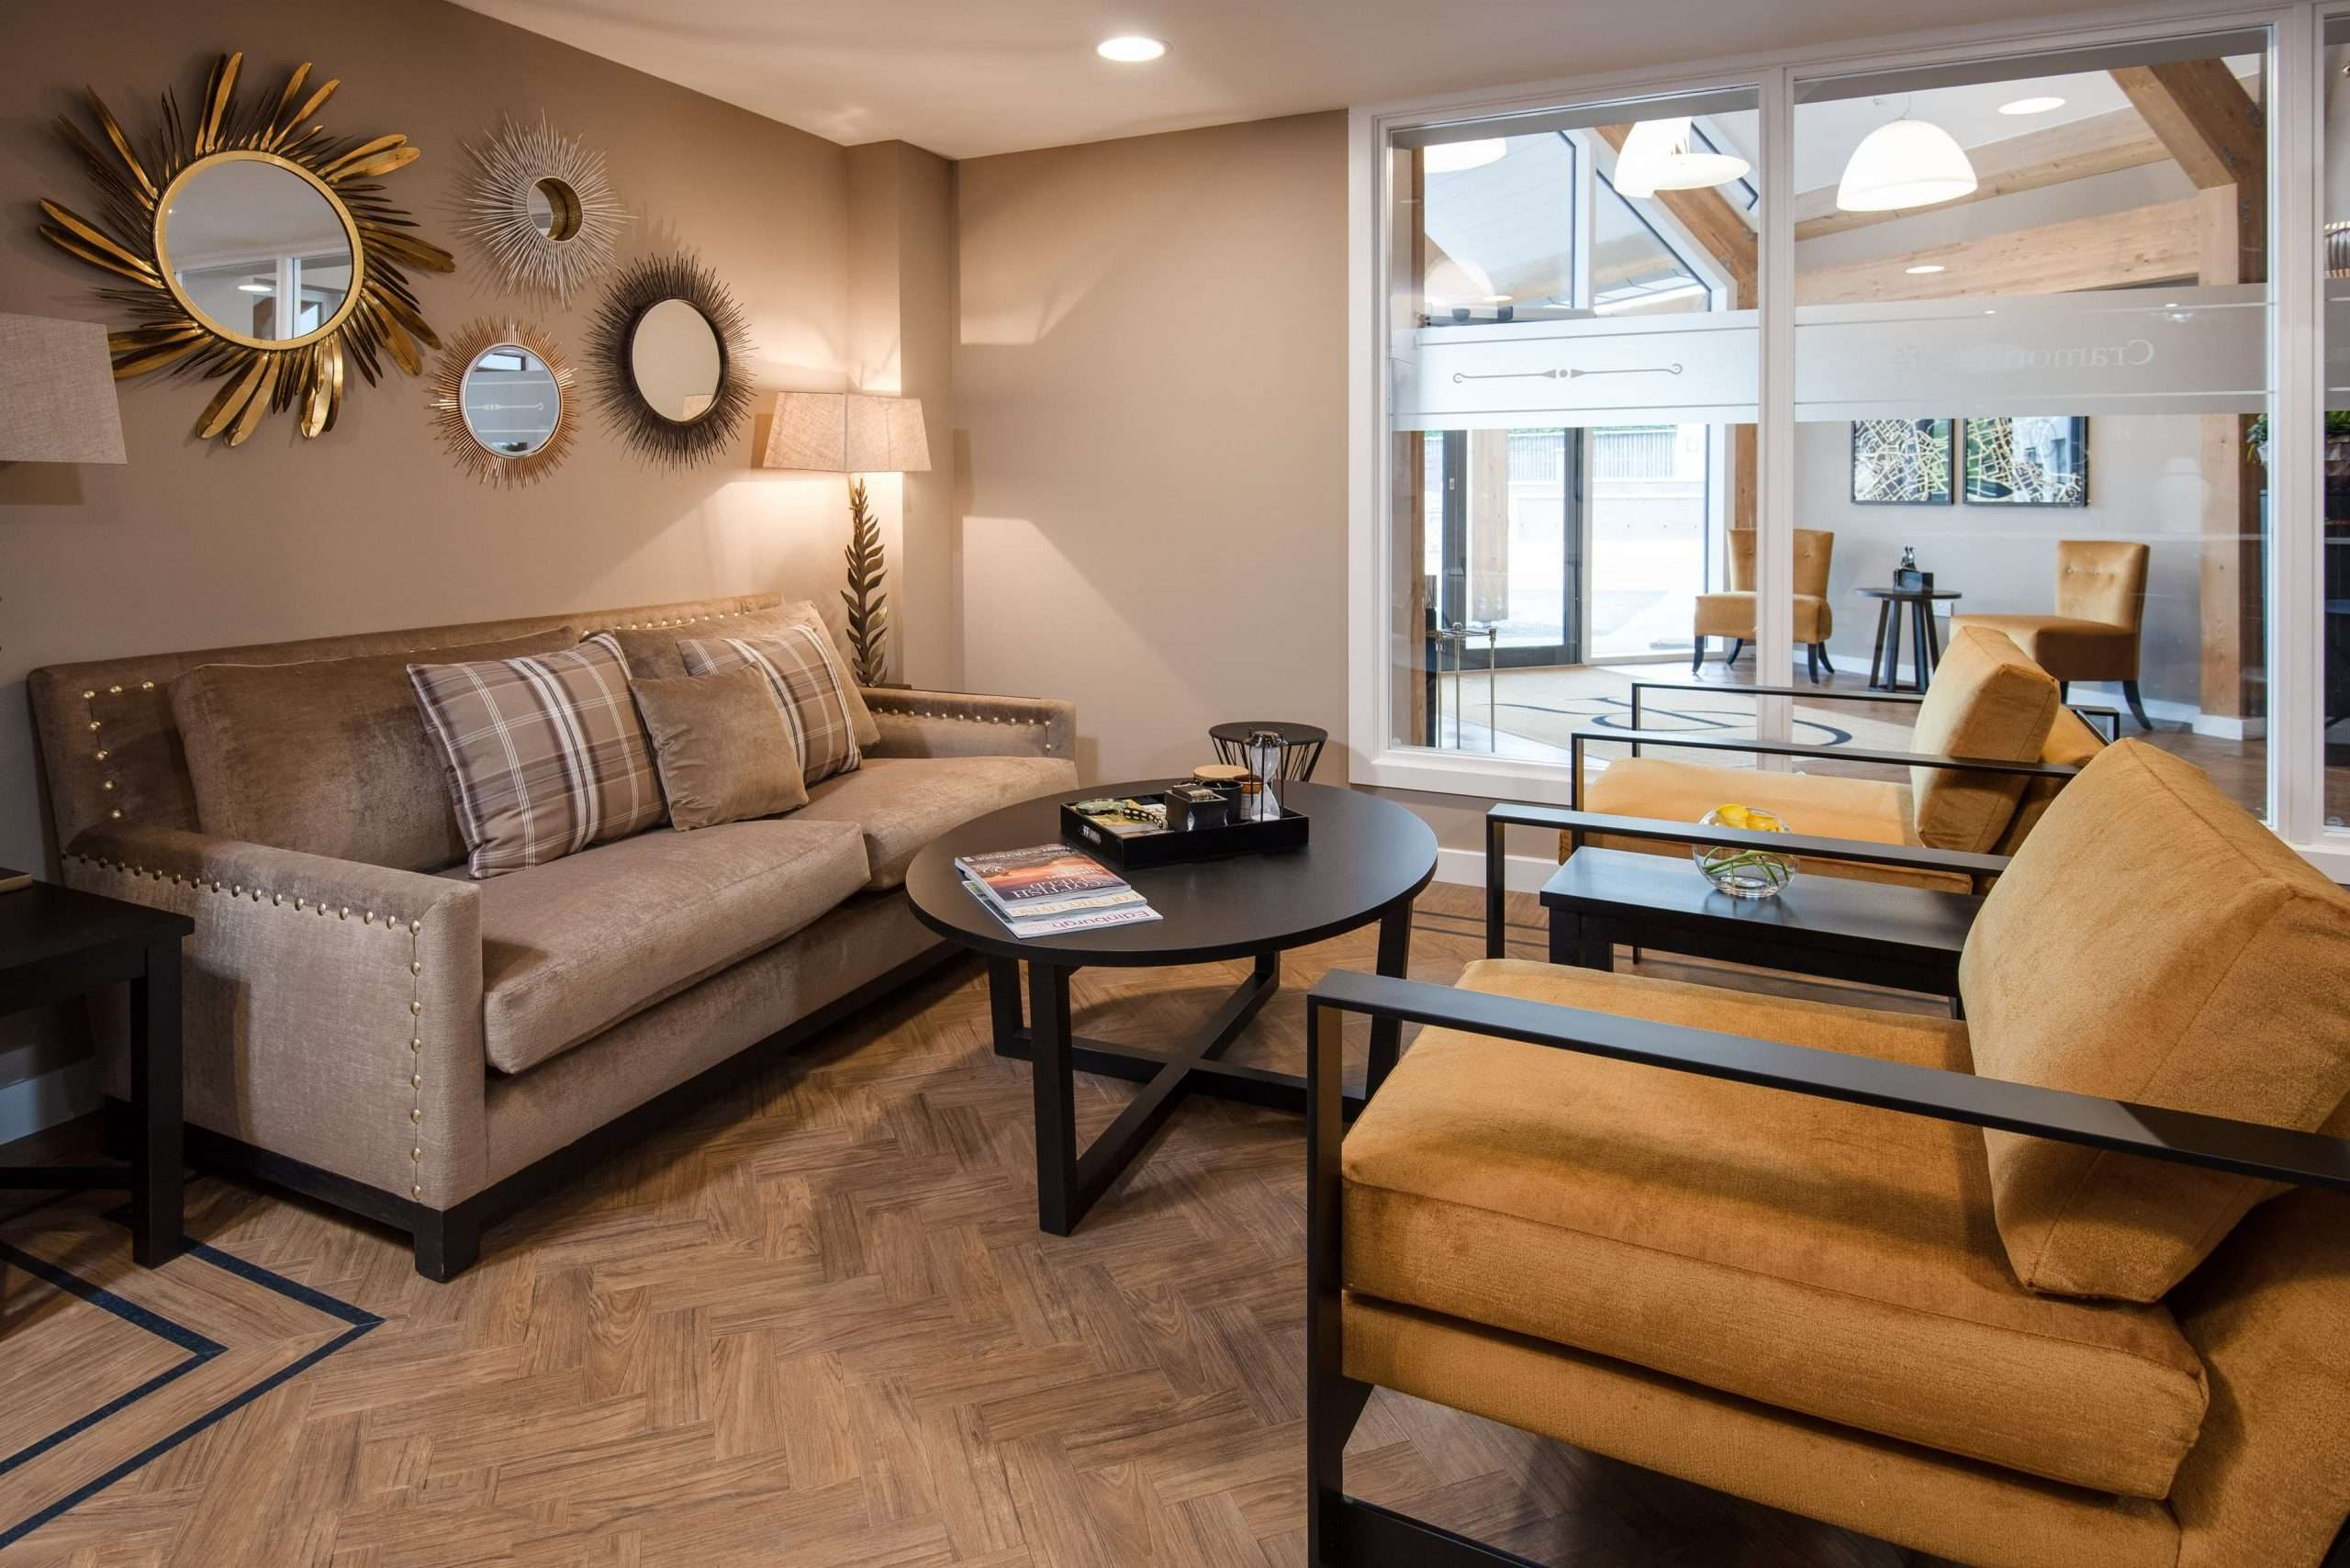 Cafe area showing comfortable seating with coffee table